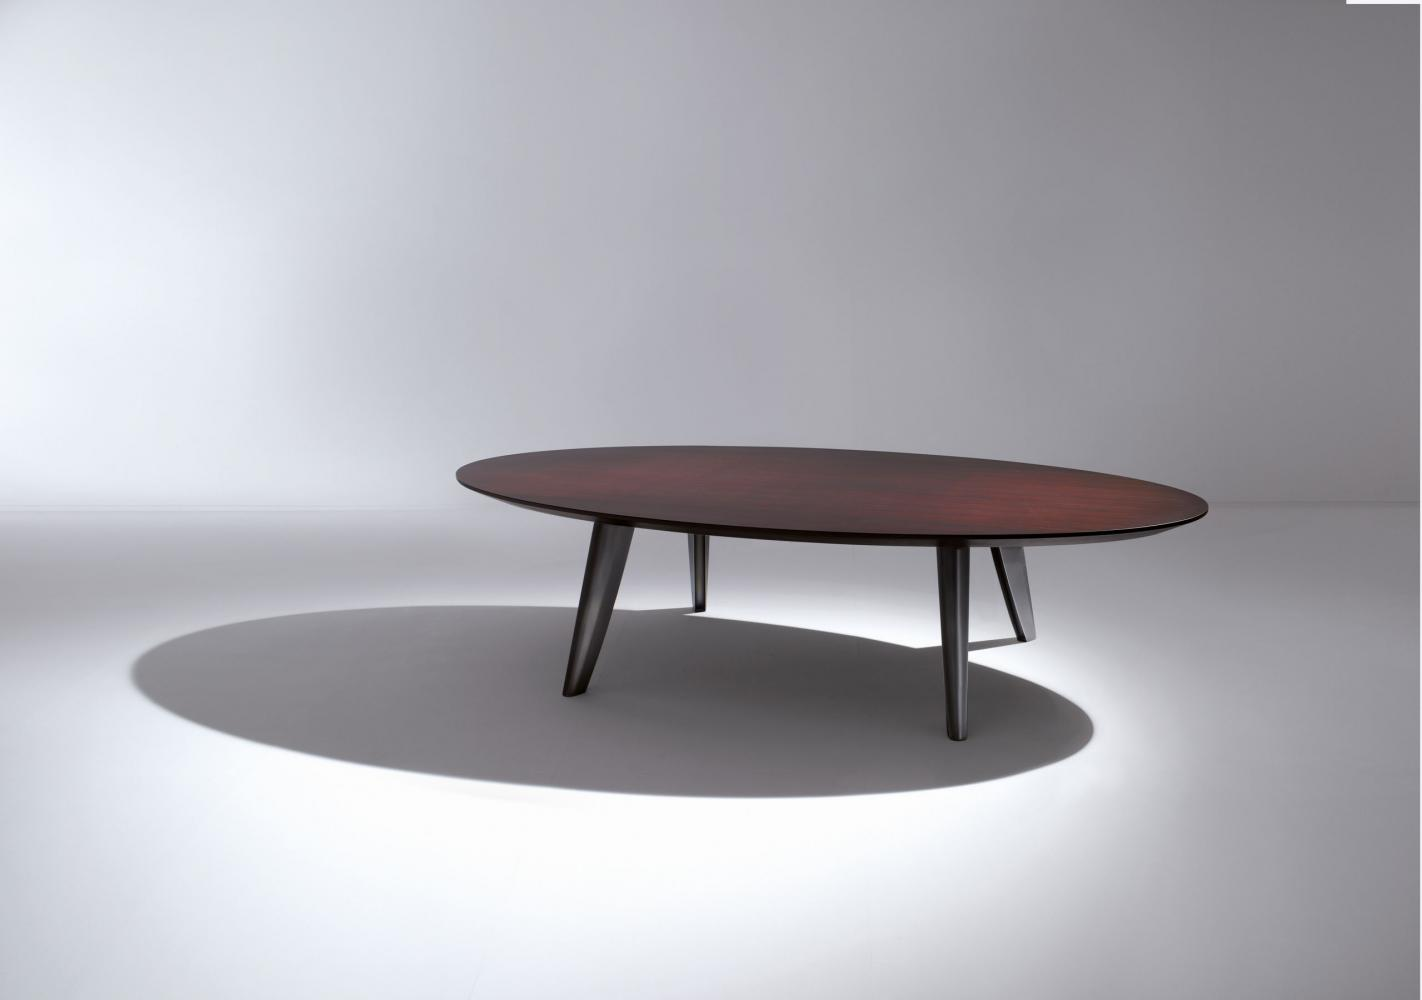 Modern luxury elliptical table with wooden top and bronze legs